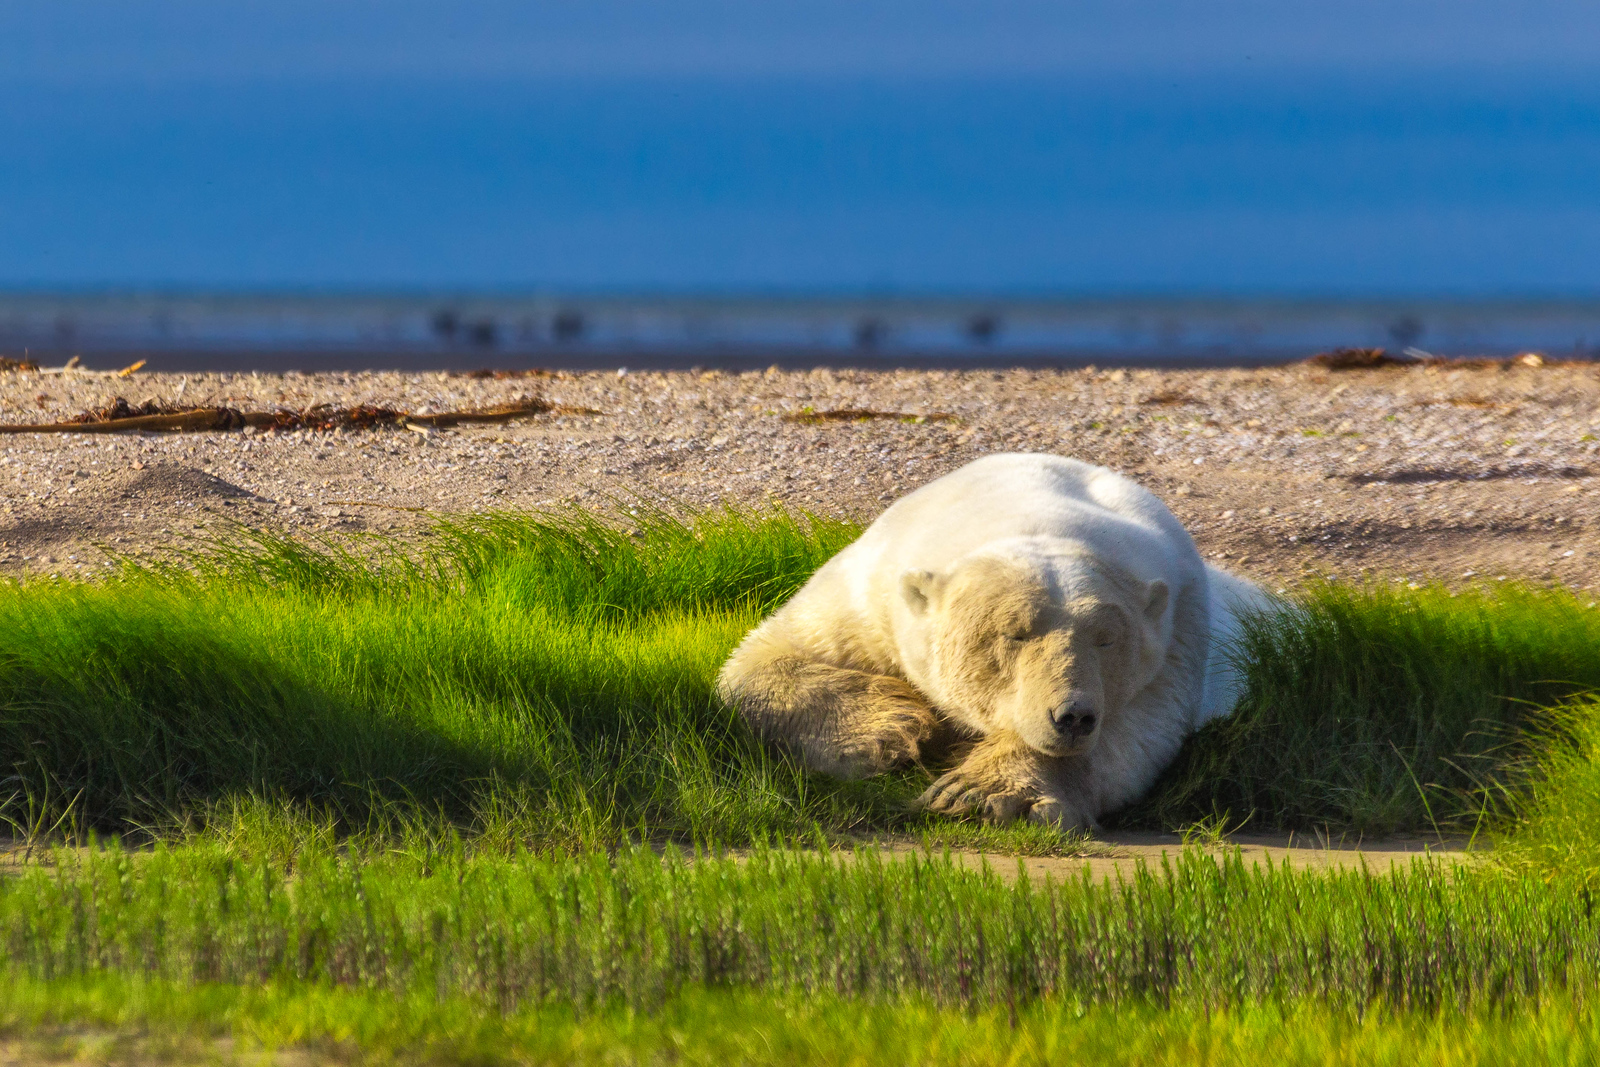 Polar bear photos -sleeping giant